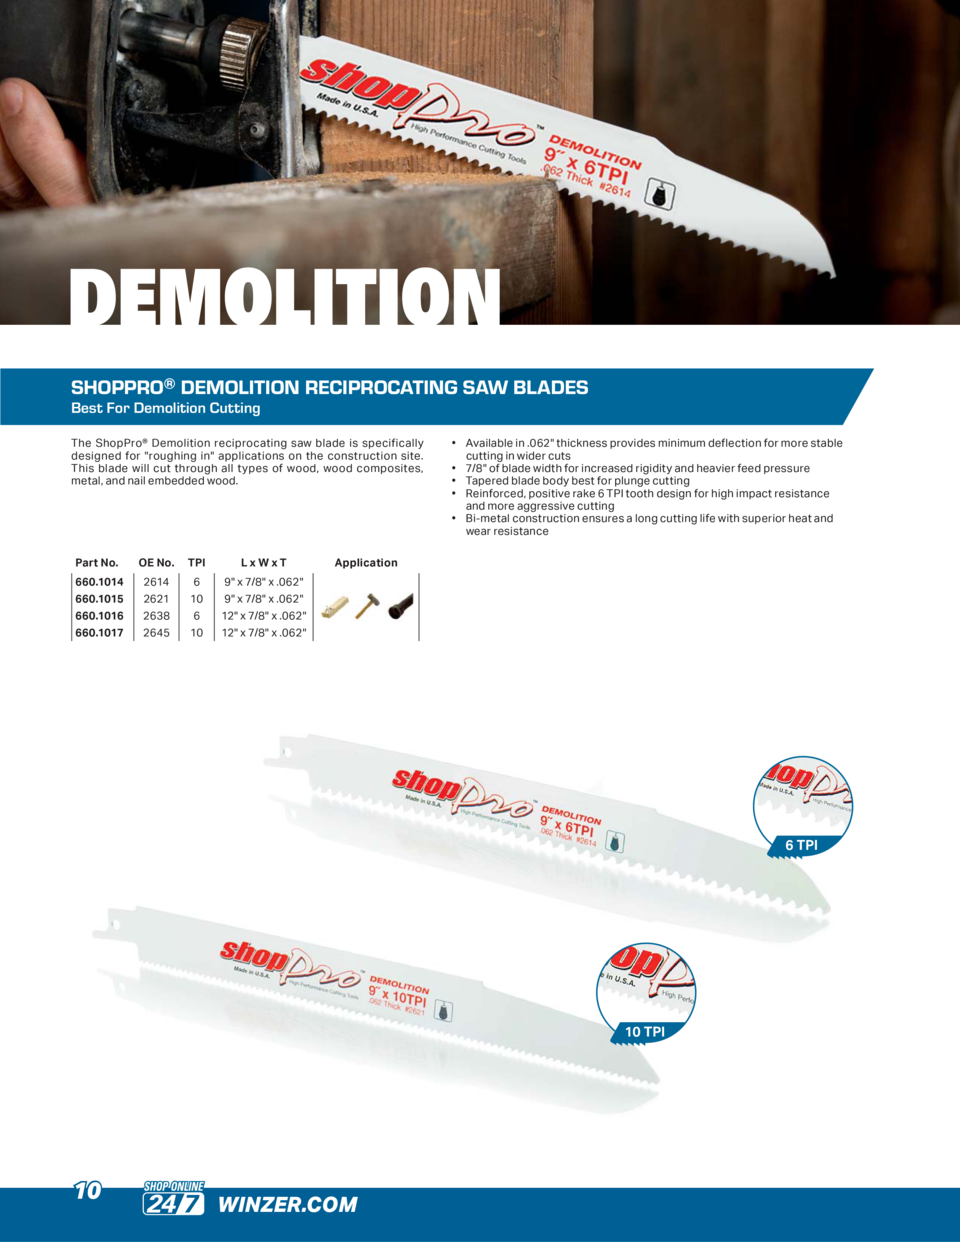 DEMOLITION SHOPPRO   DEMOLITION RECIPROCATING SAW BLADES Best For Demolition Cutting The ShopPro   Demolition reciprocatin...